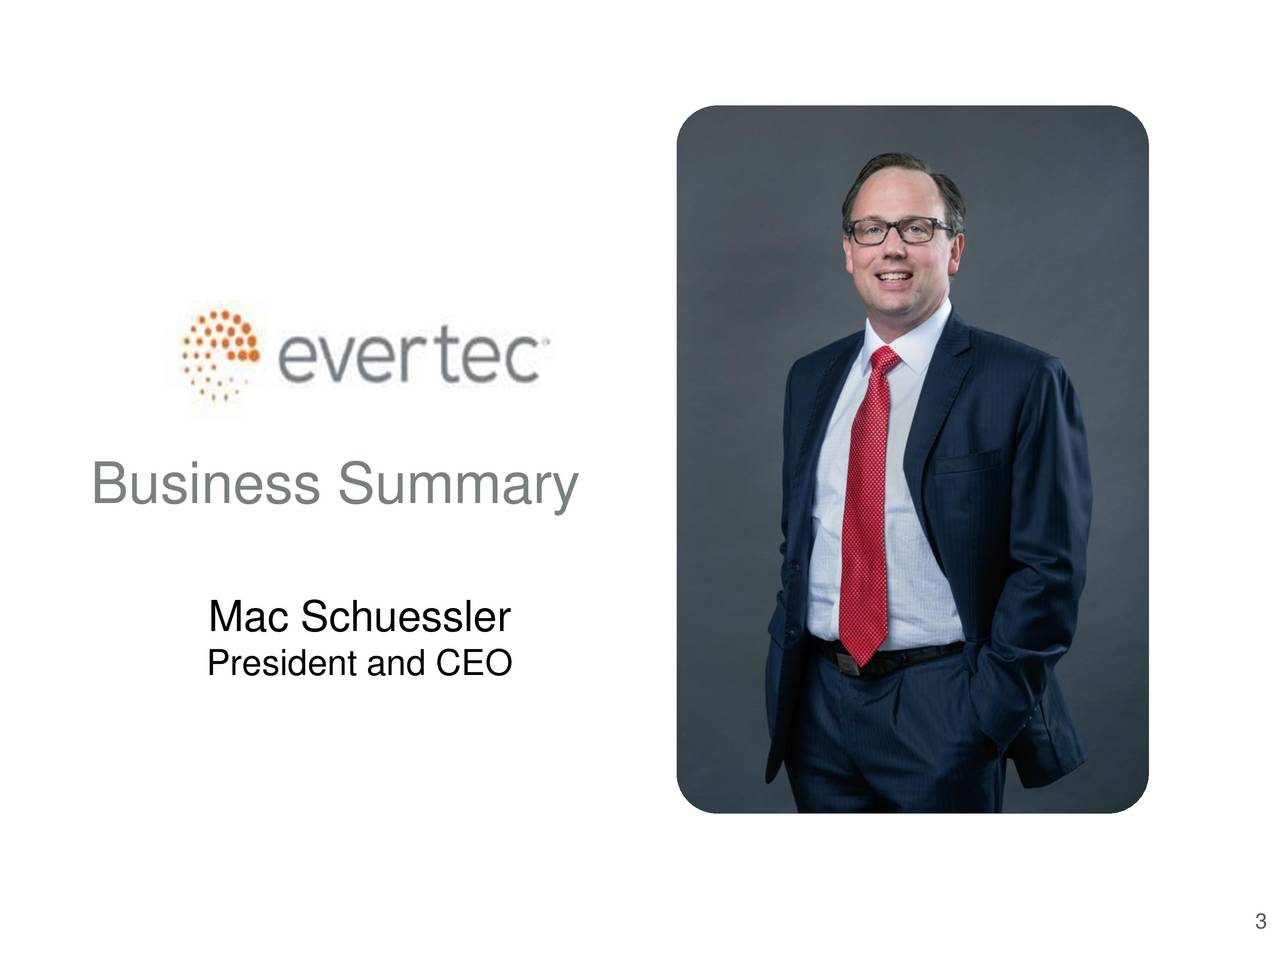 Mac Schuessler President and CEO 3